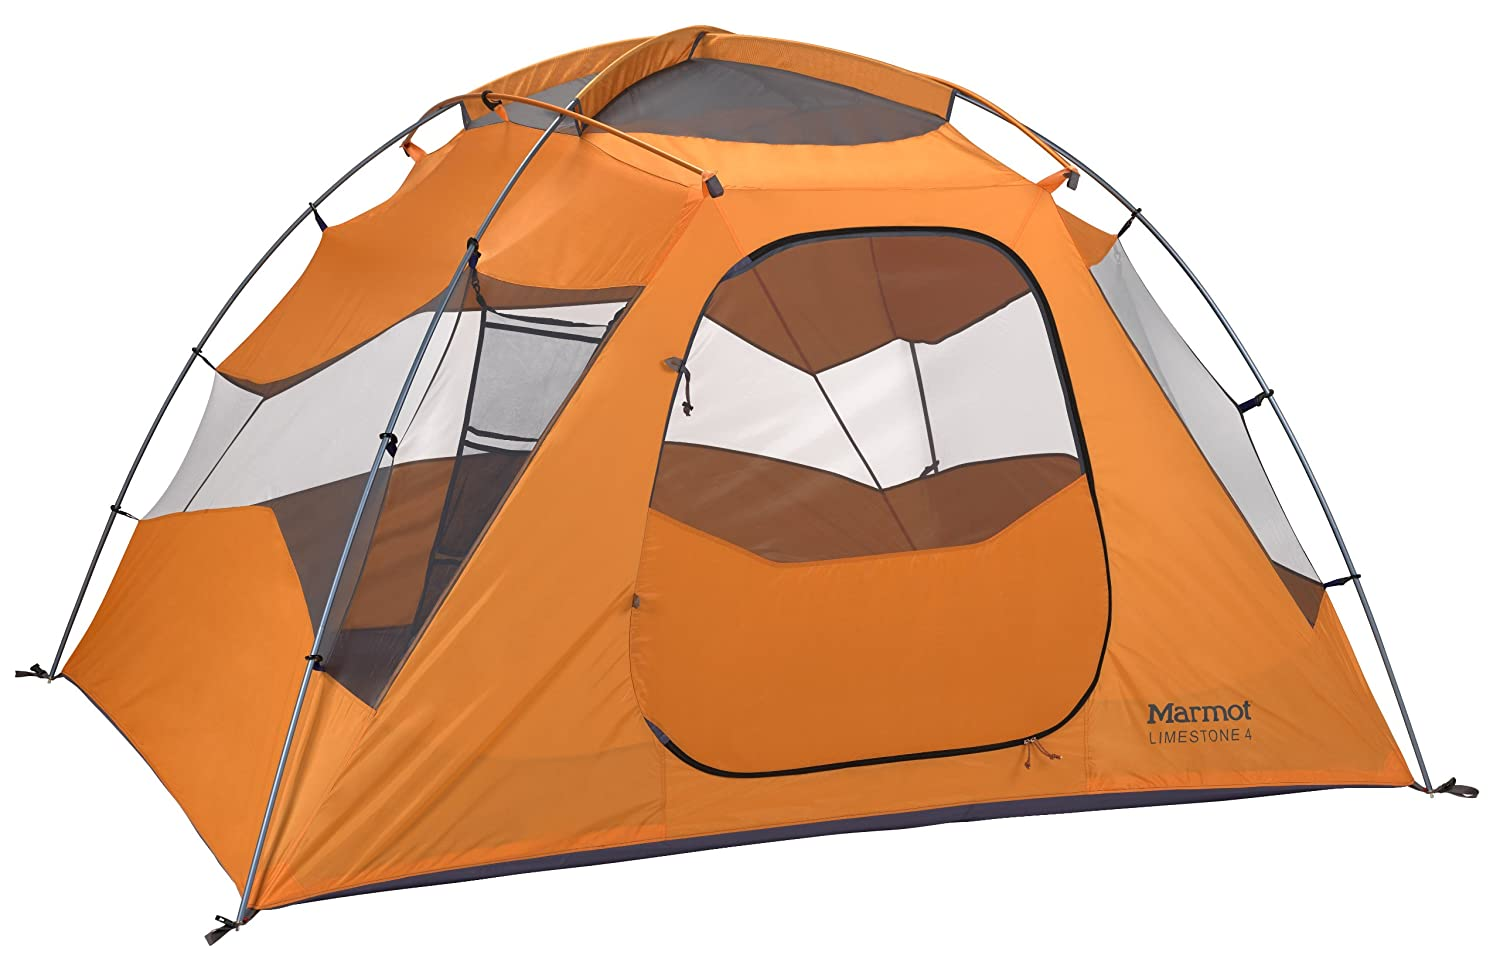 Amazon.com  Marmot Limestone 4 Persons Tent Green One  Family Tents  Sports u0026 Outdoors  sc 1 st  Amazon.com & Amazon.com : Marmot Limestone 4 Persons Tent Green One : Family ...